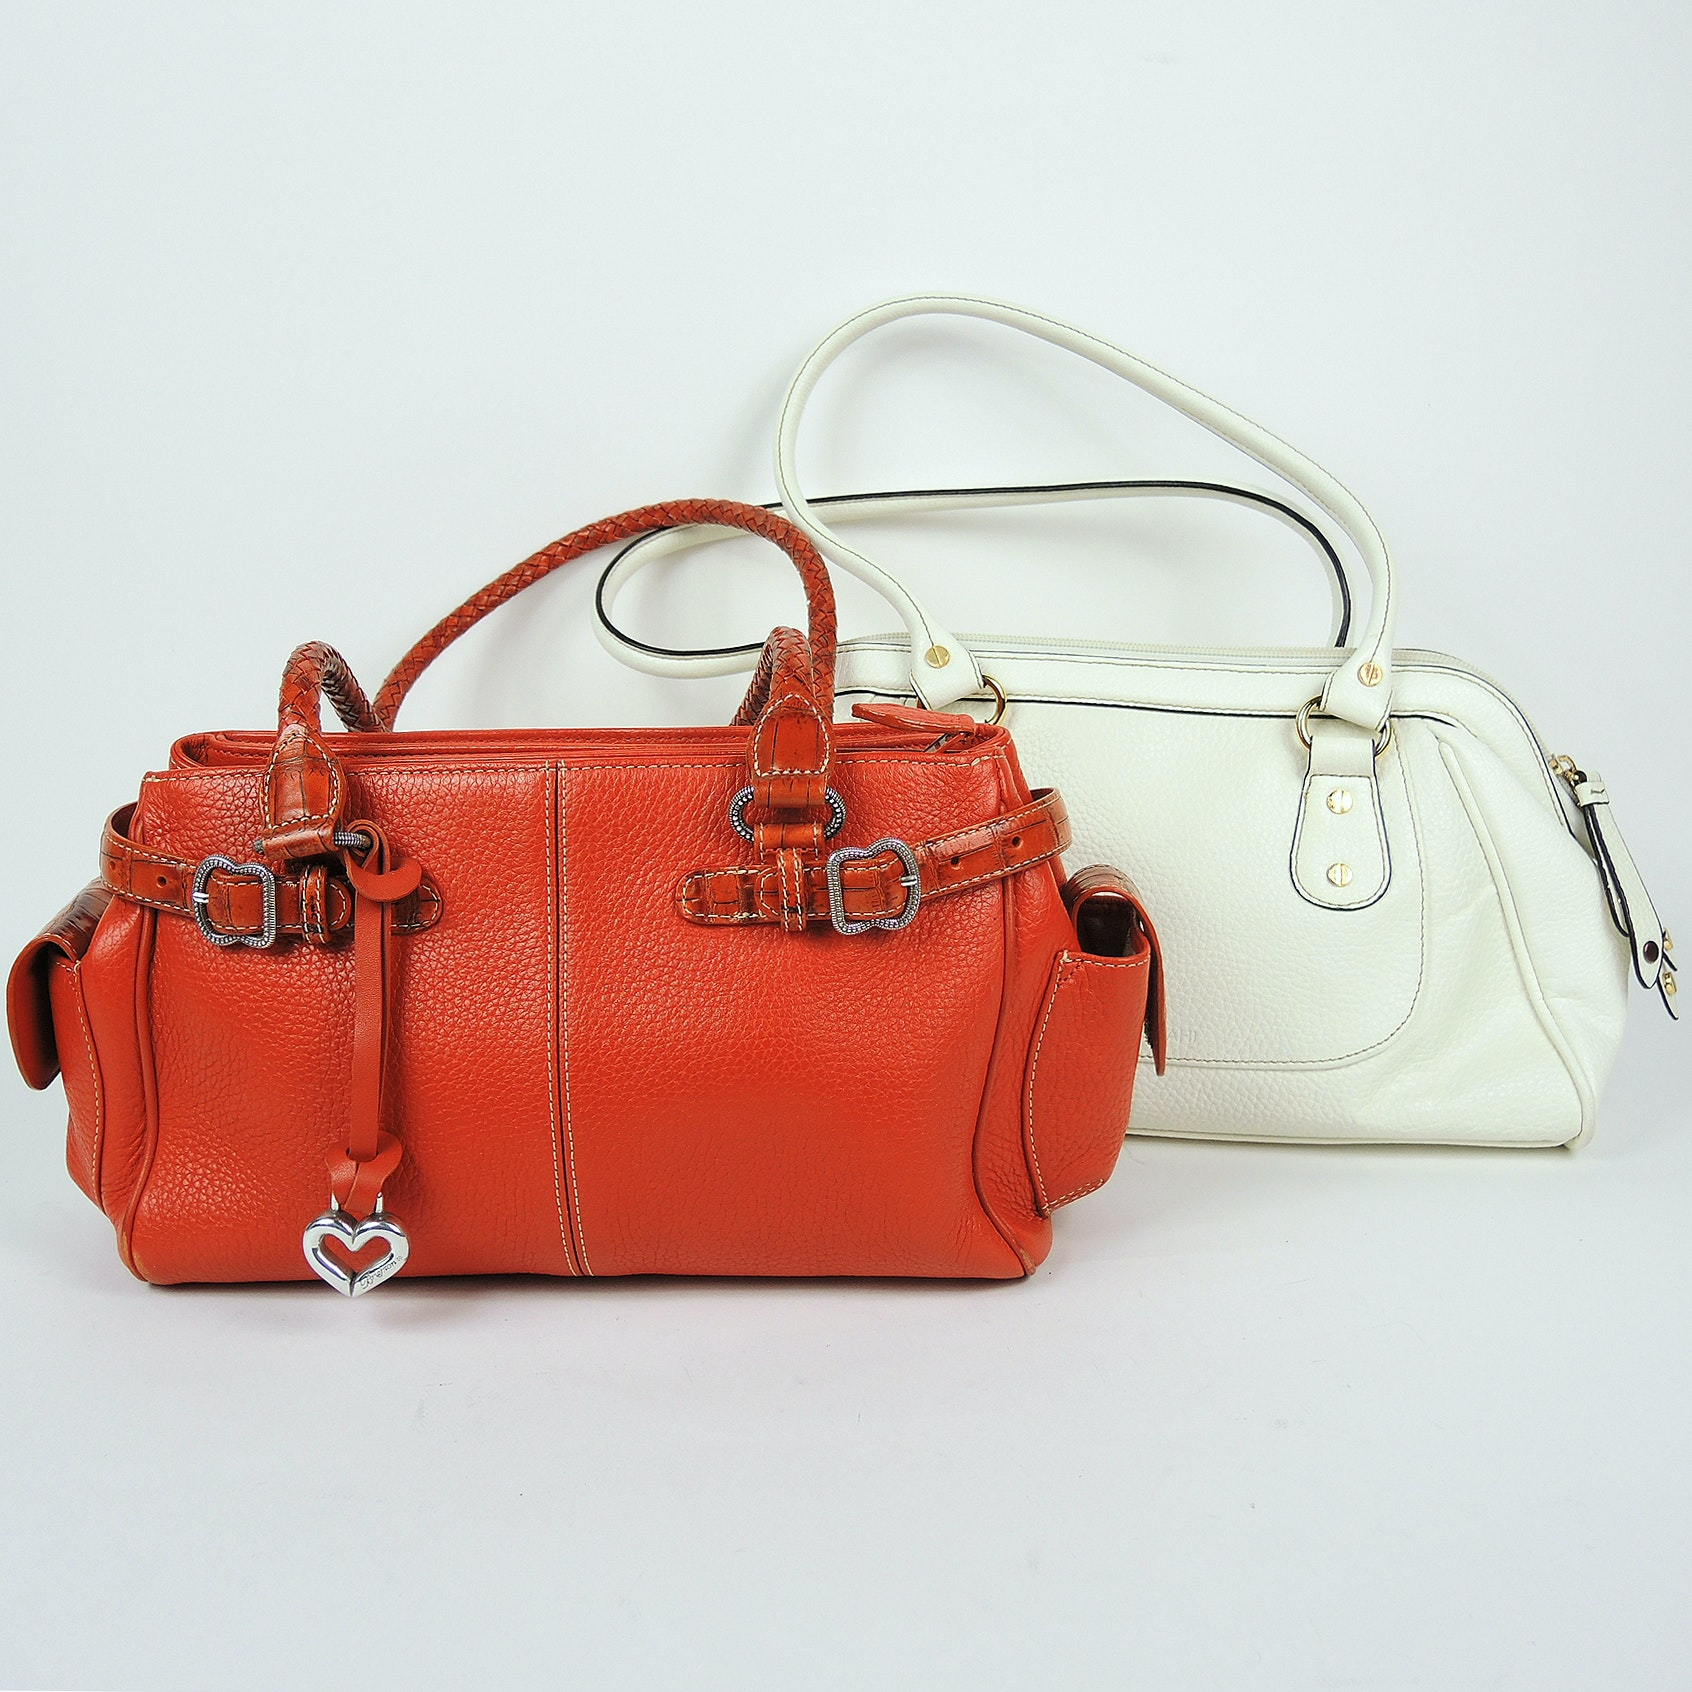 Isaac Mizrahi and Brighton Pebbled Leather Shoulder Bags